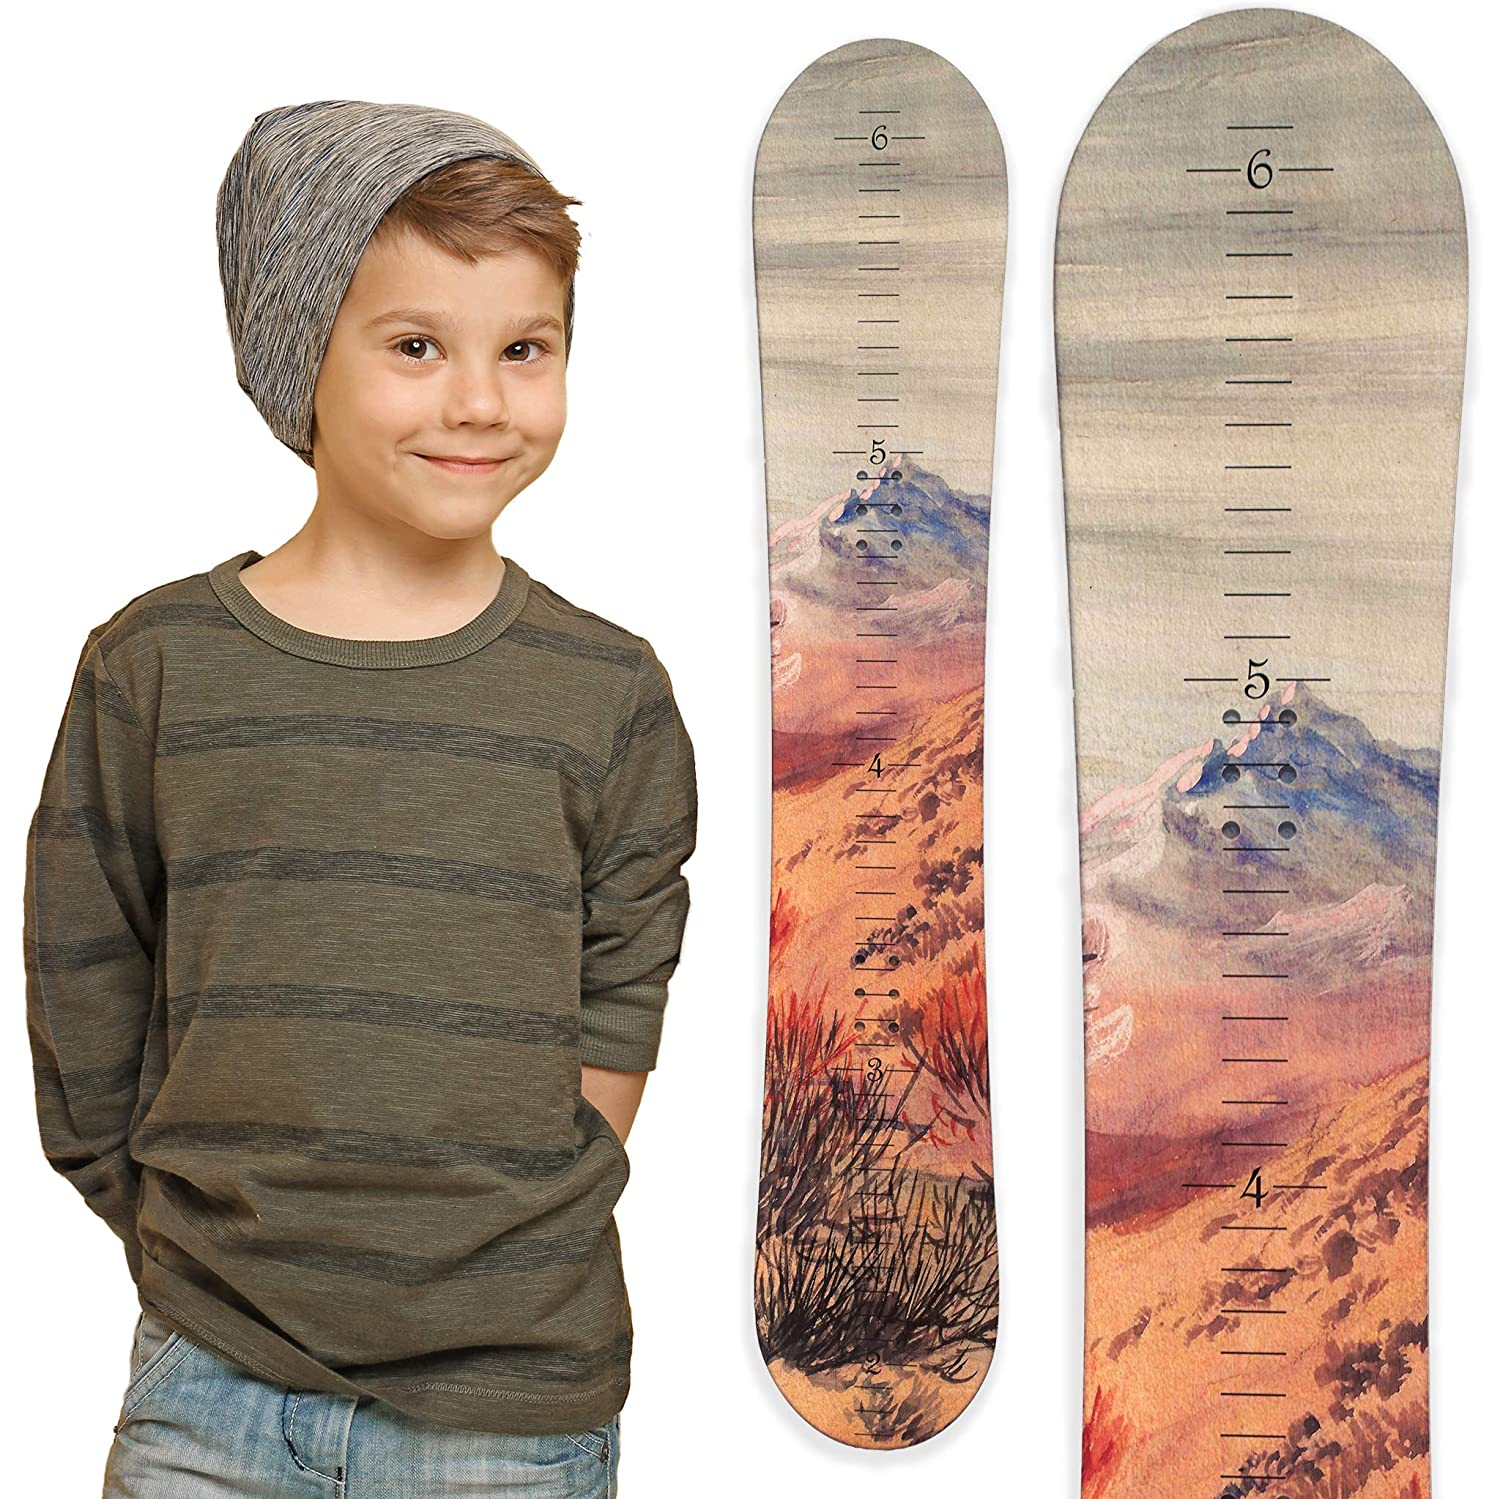 Snowboard Wooden Growth Chart by Growth Chart Art (Traditional Wood) Growth Chart Art TM